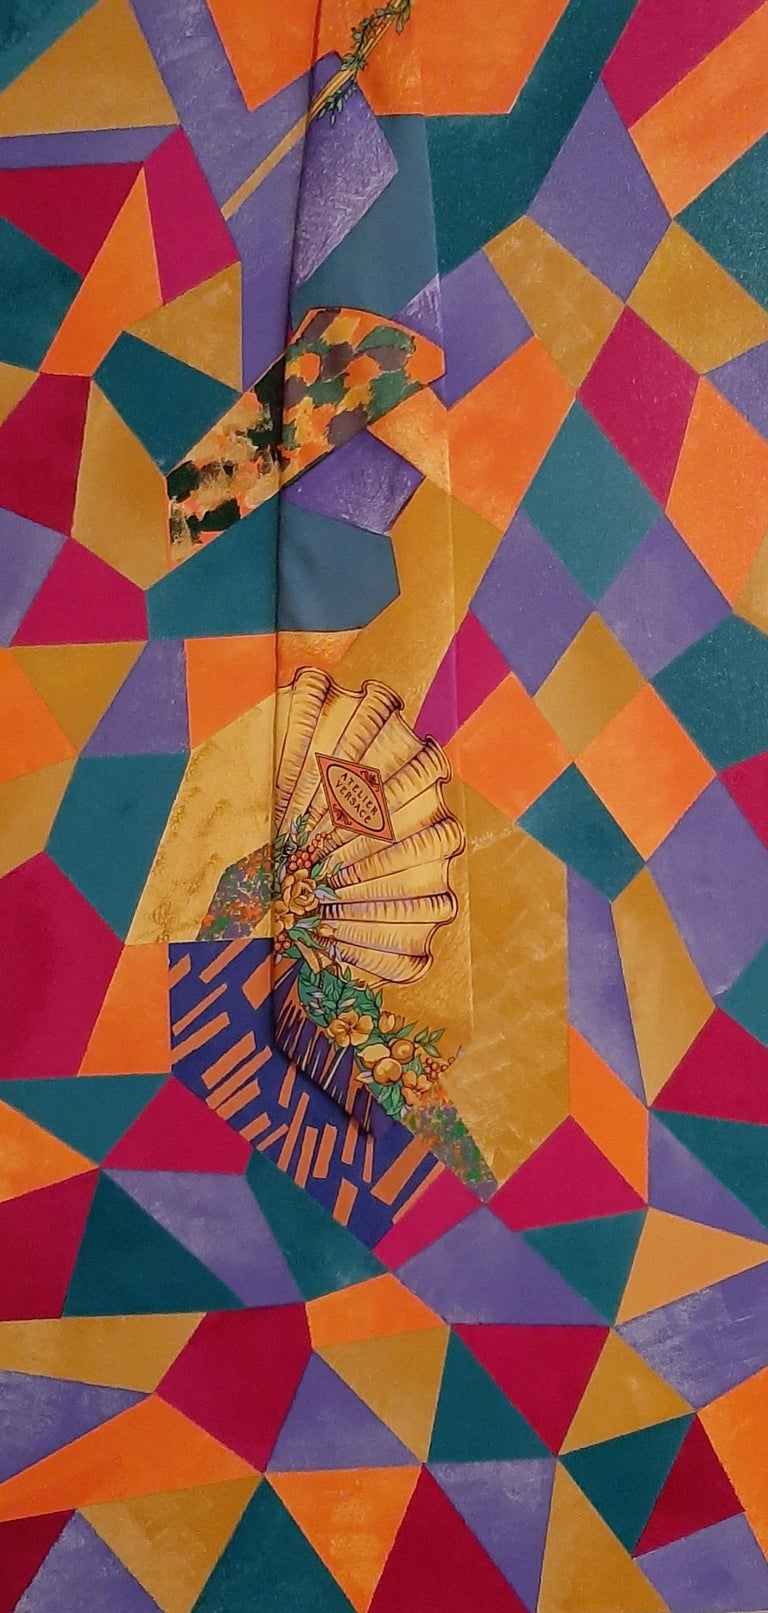 Mosaic Seashell, Abstract Painting - Mixed Media Art by F. Gregory Brown